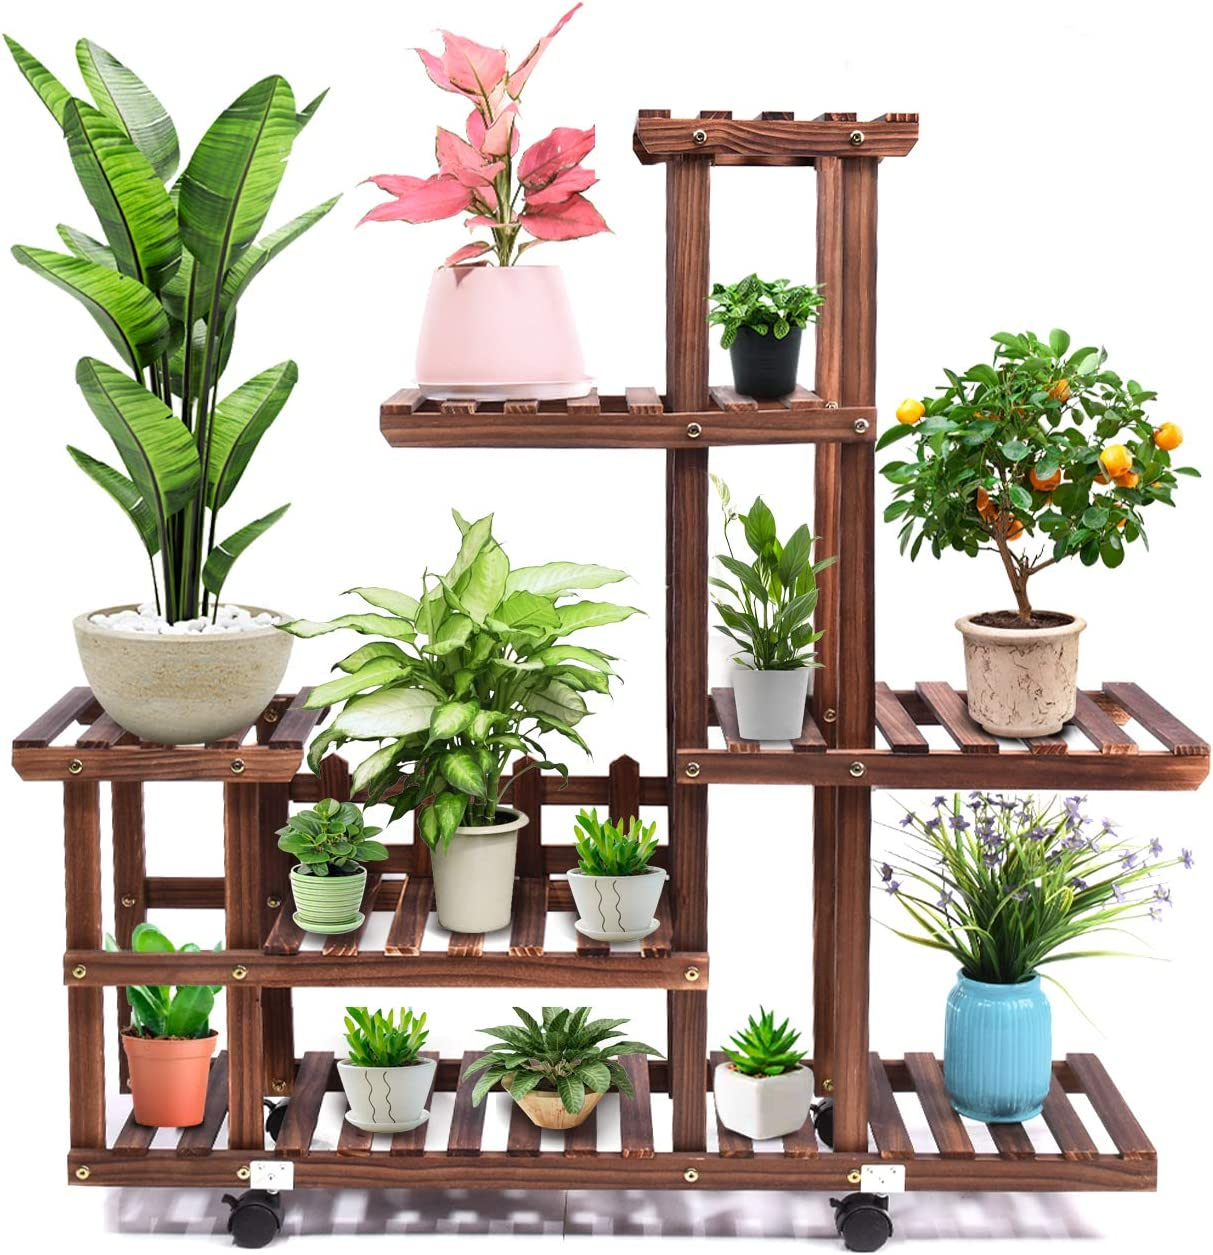 Amazon Com Wood Plant Stand Indoor Outdoor Wooden Plant Display Multi Tier Flower Shelves Stands Garden Plant Shelf Rack Holder Organizer In Corner Living Room Balcony Patio Yard 11 13 Flowerpots Garden